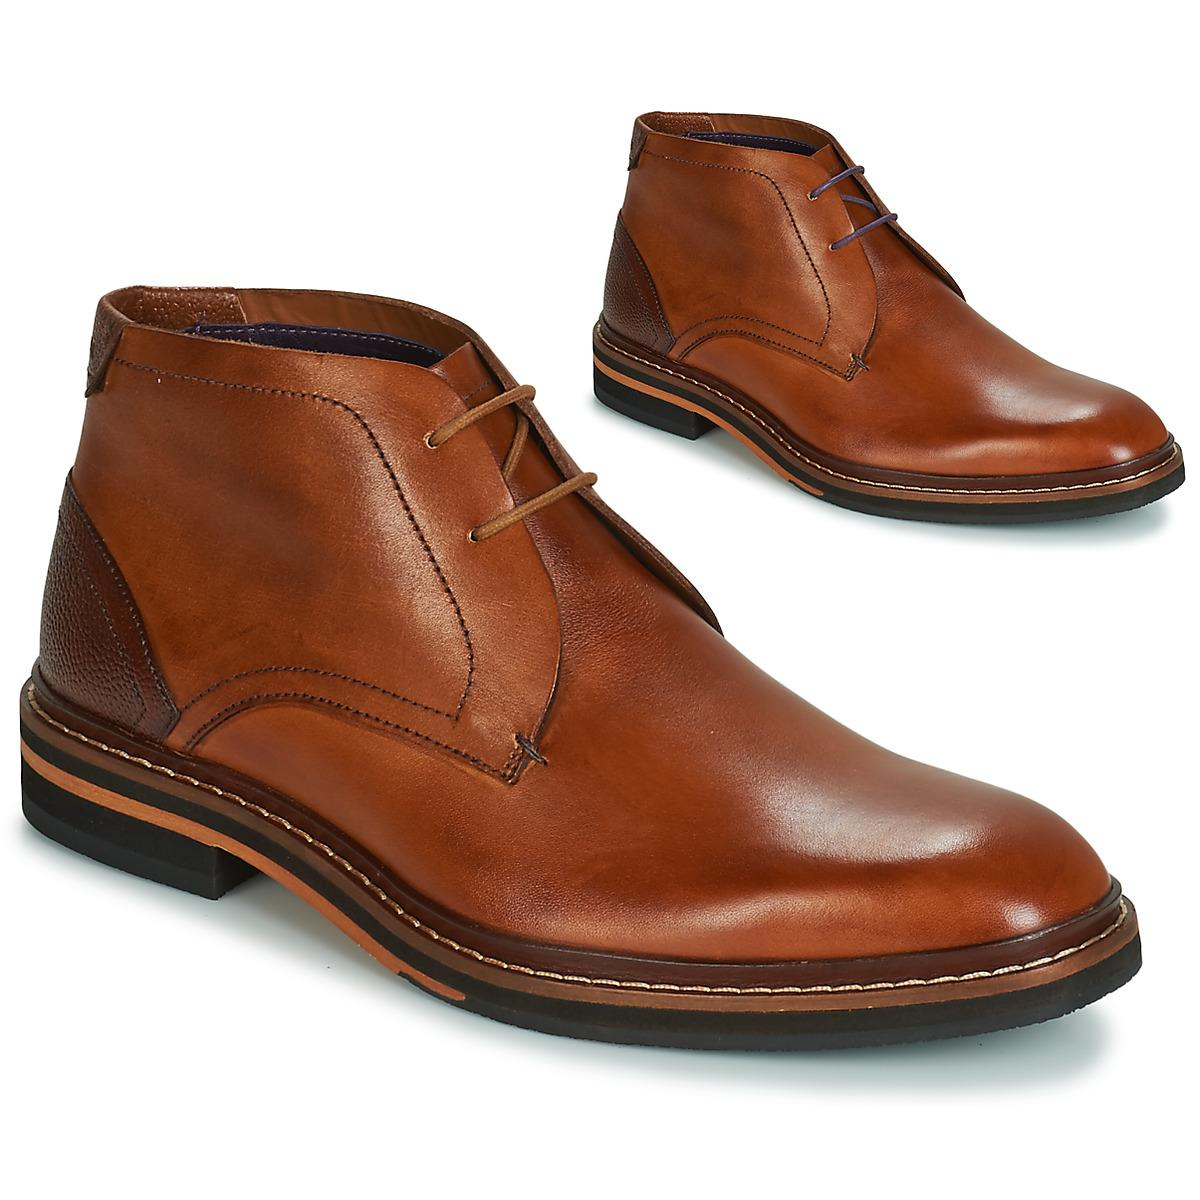 b8eccbc39 Ted Baker Azzlan Mid Boots in Brown for Men - Lyst